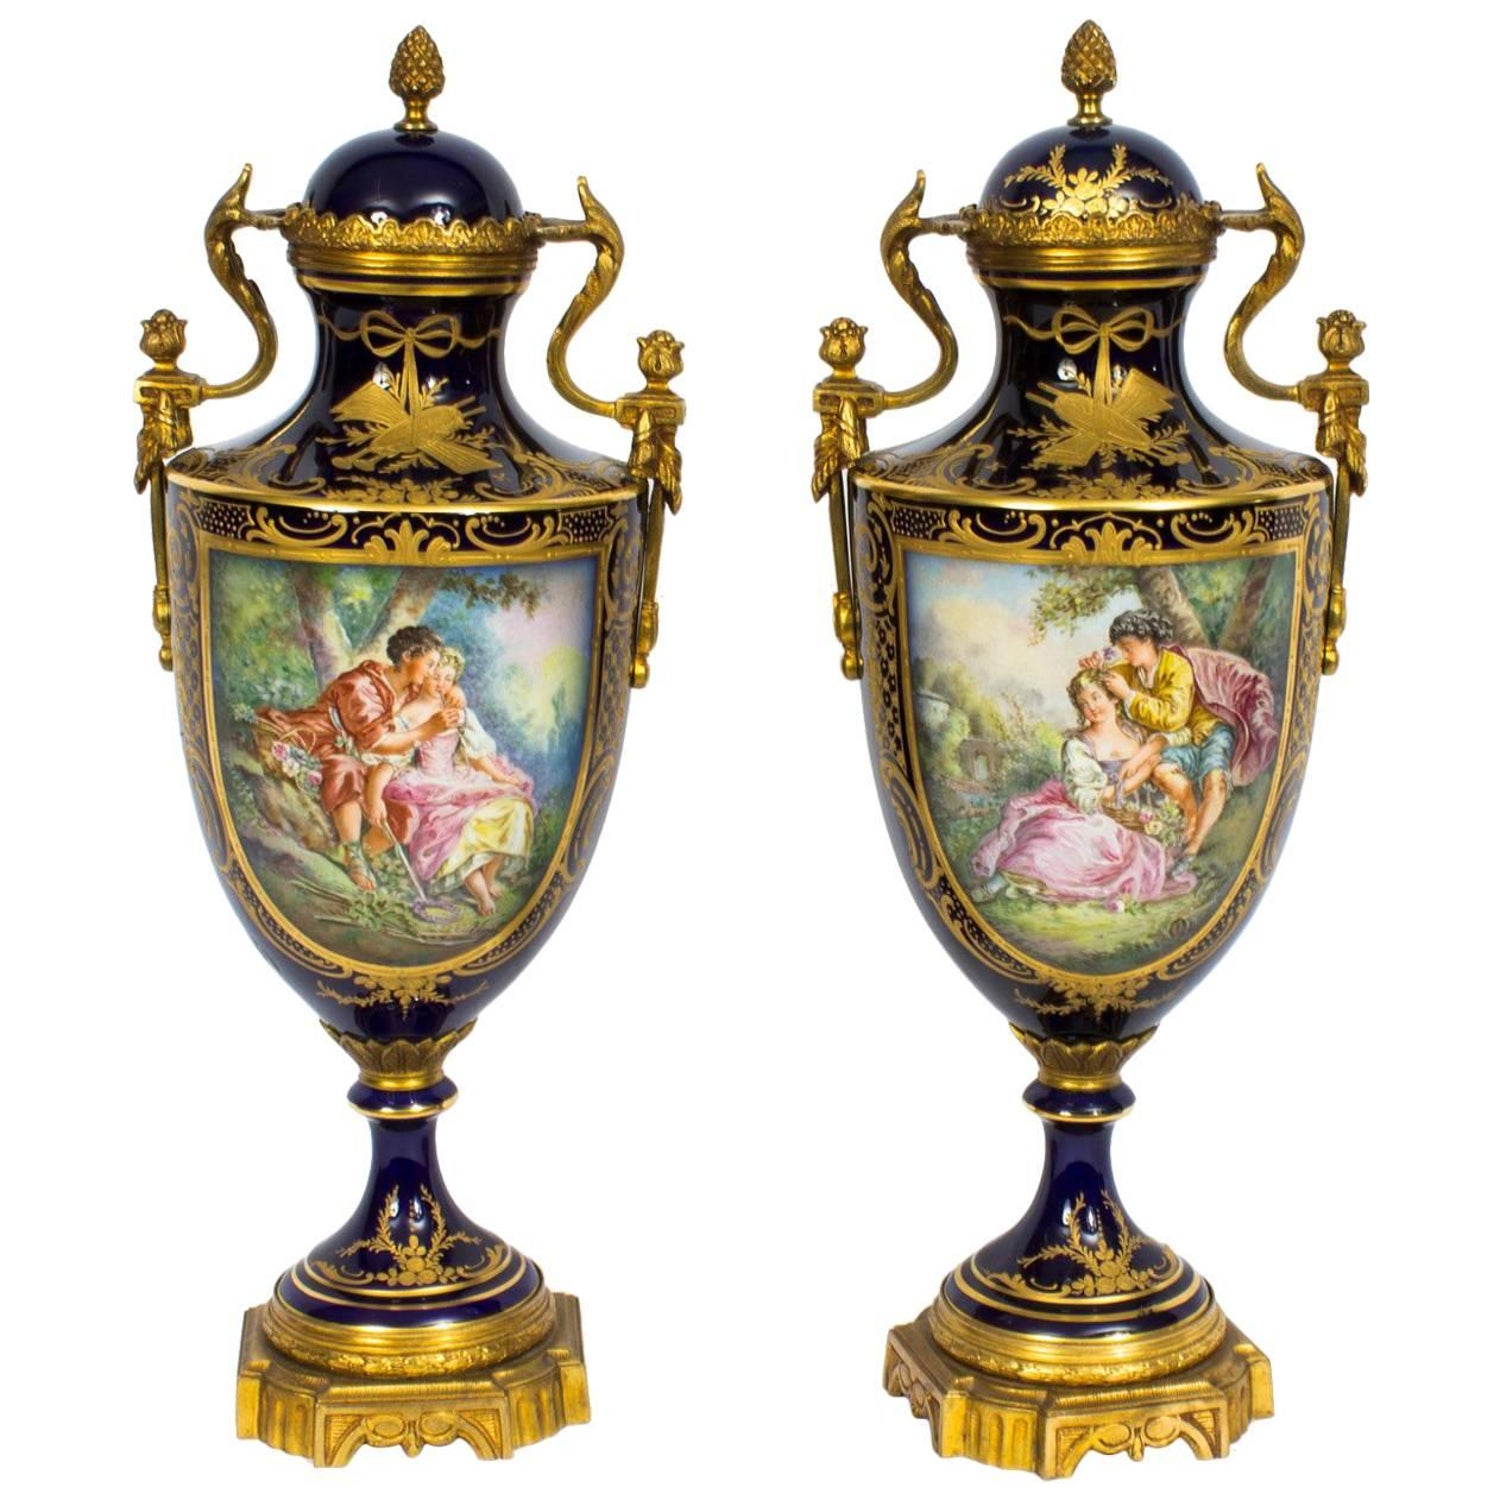 Early 20th century pair of ormolu mounted sevres style lidded urns early 20th century pair of ormolu mounted sevres style lidded urns vases for sale at 1stdibs reviewsmspy